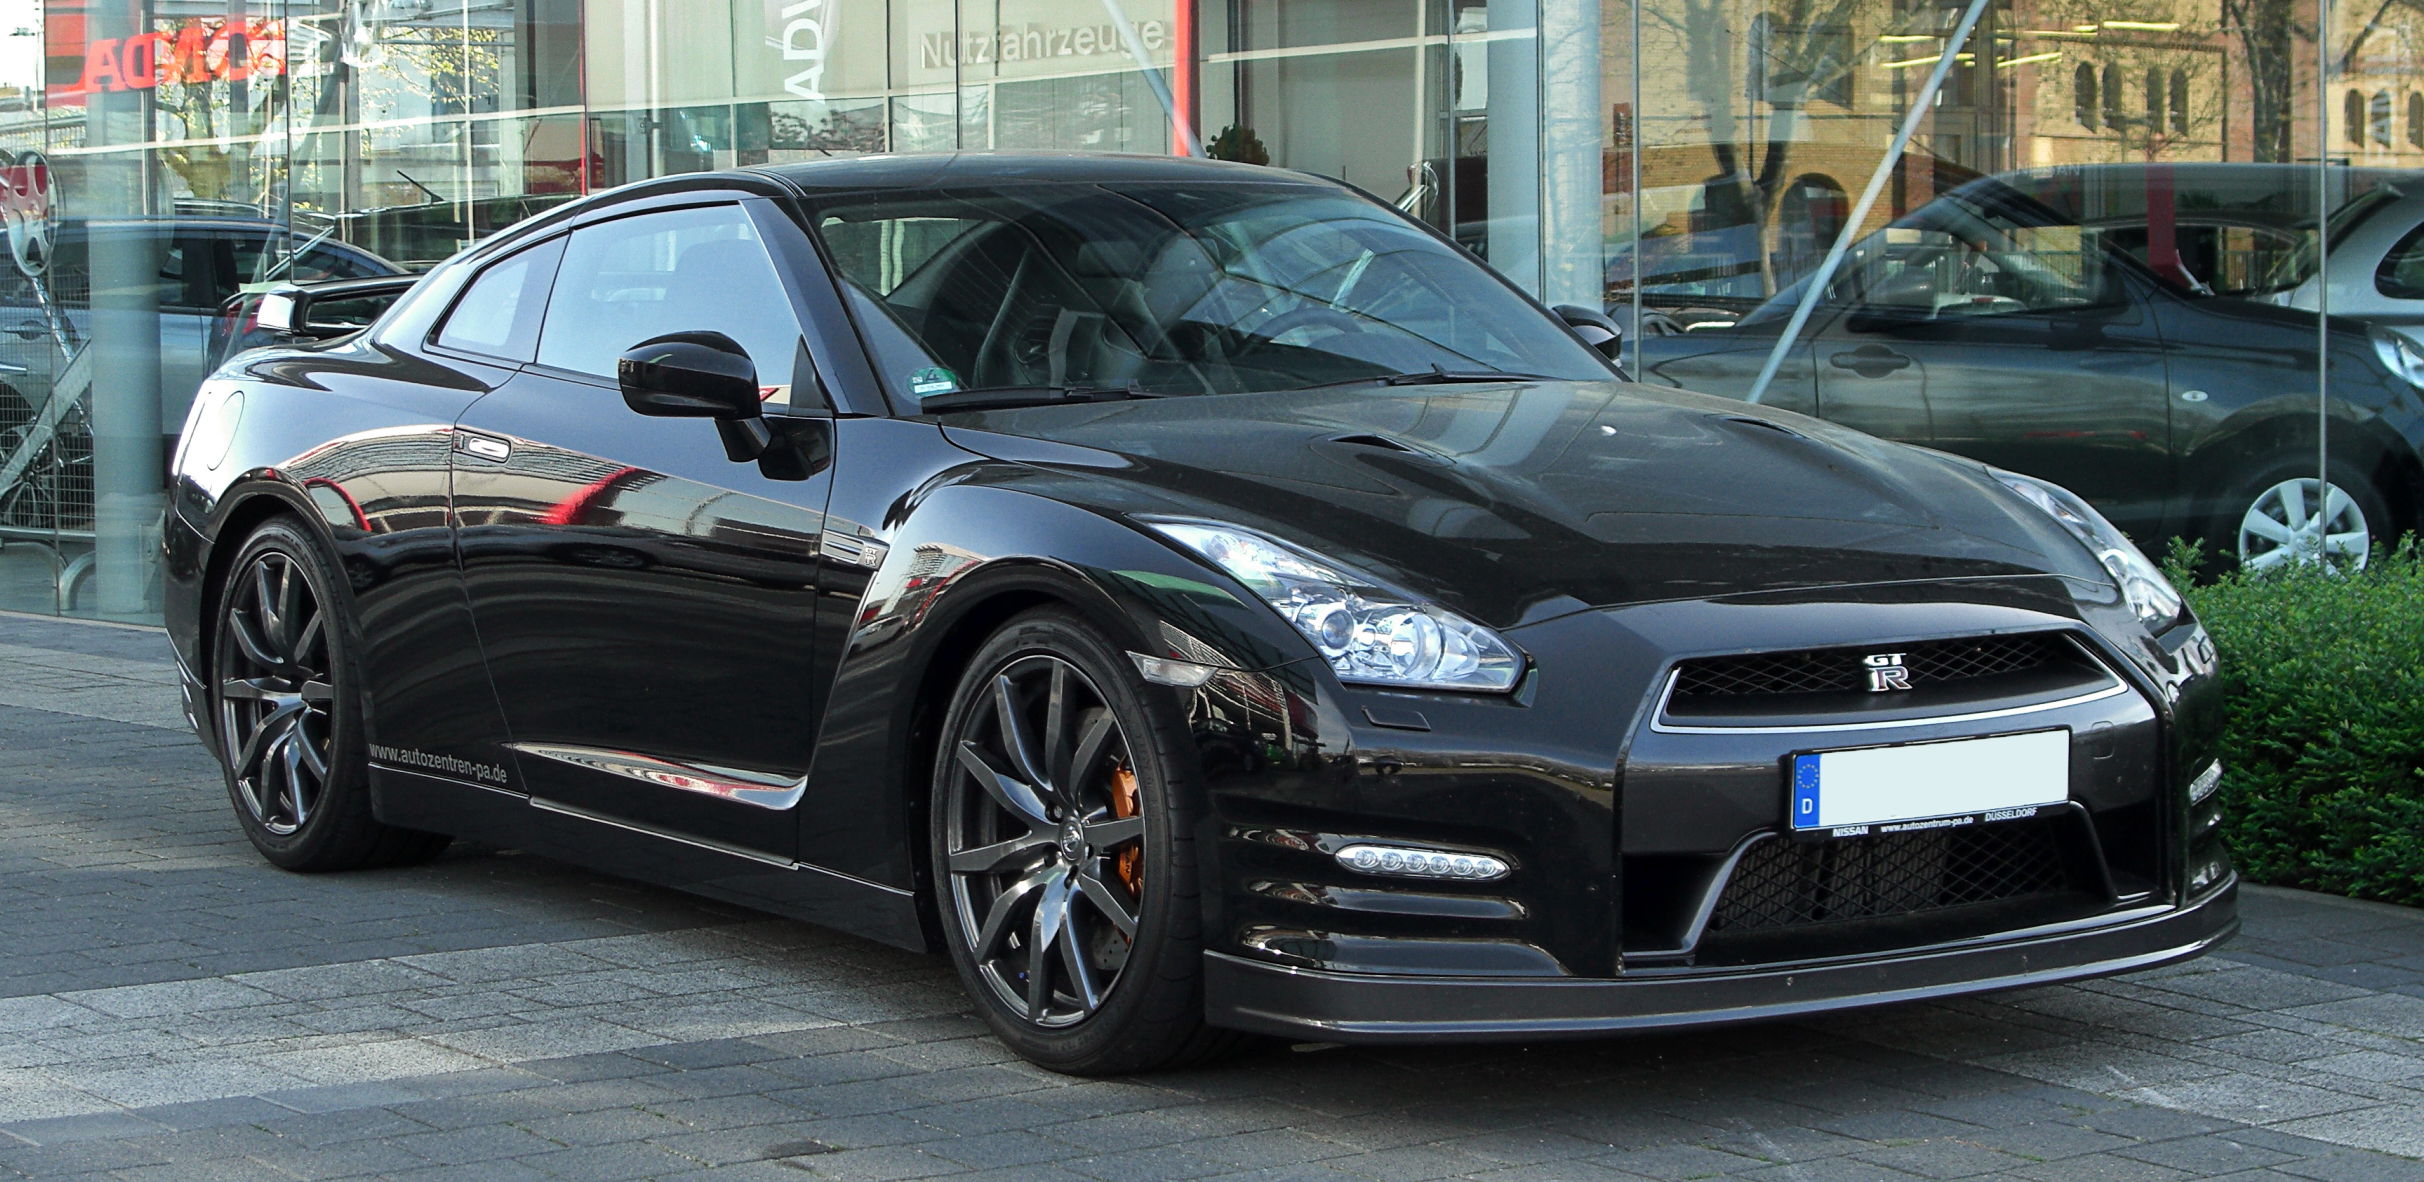 2011 Nissan GT-R Reviews, Specs and Prices   Cars.com